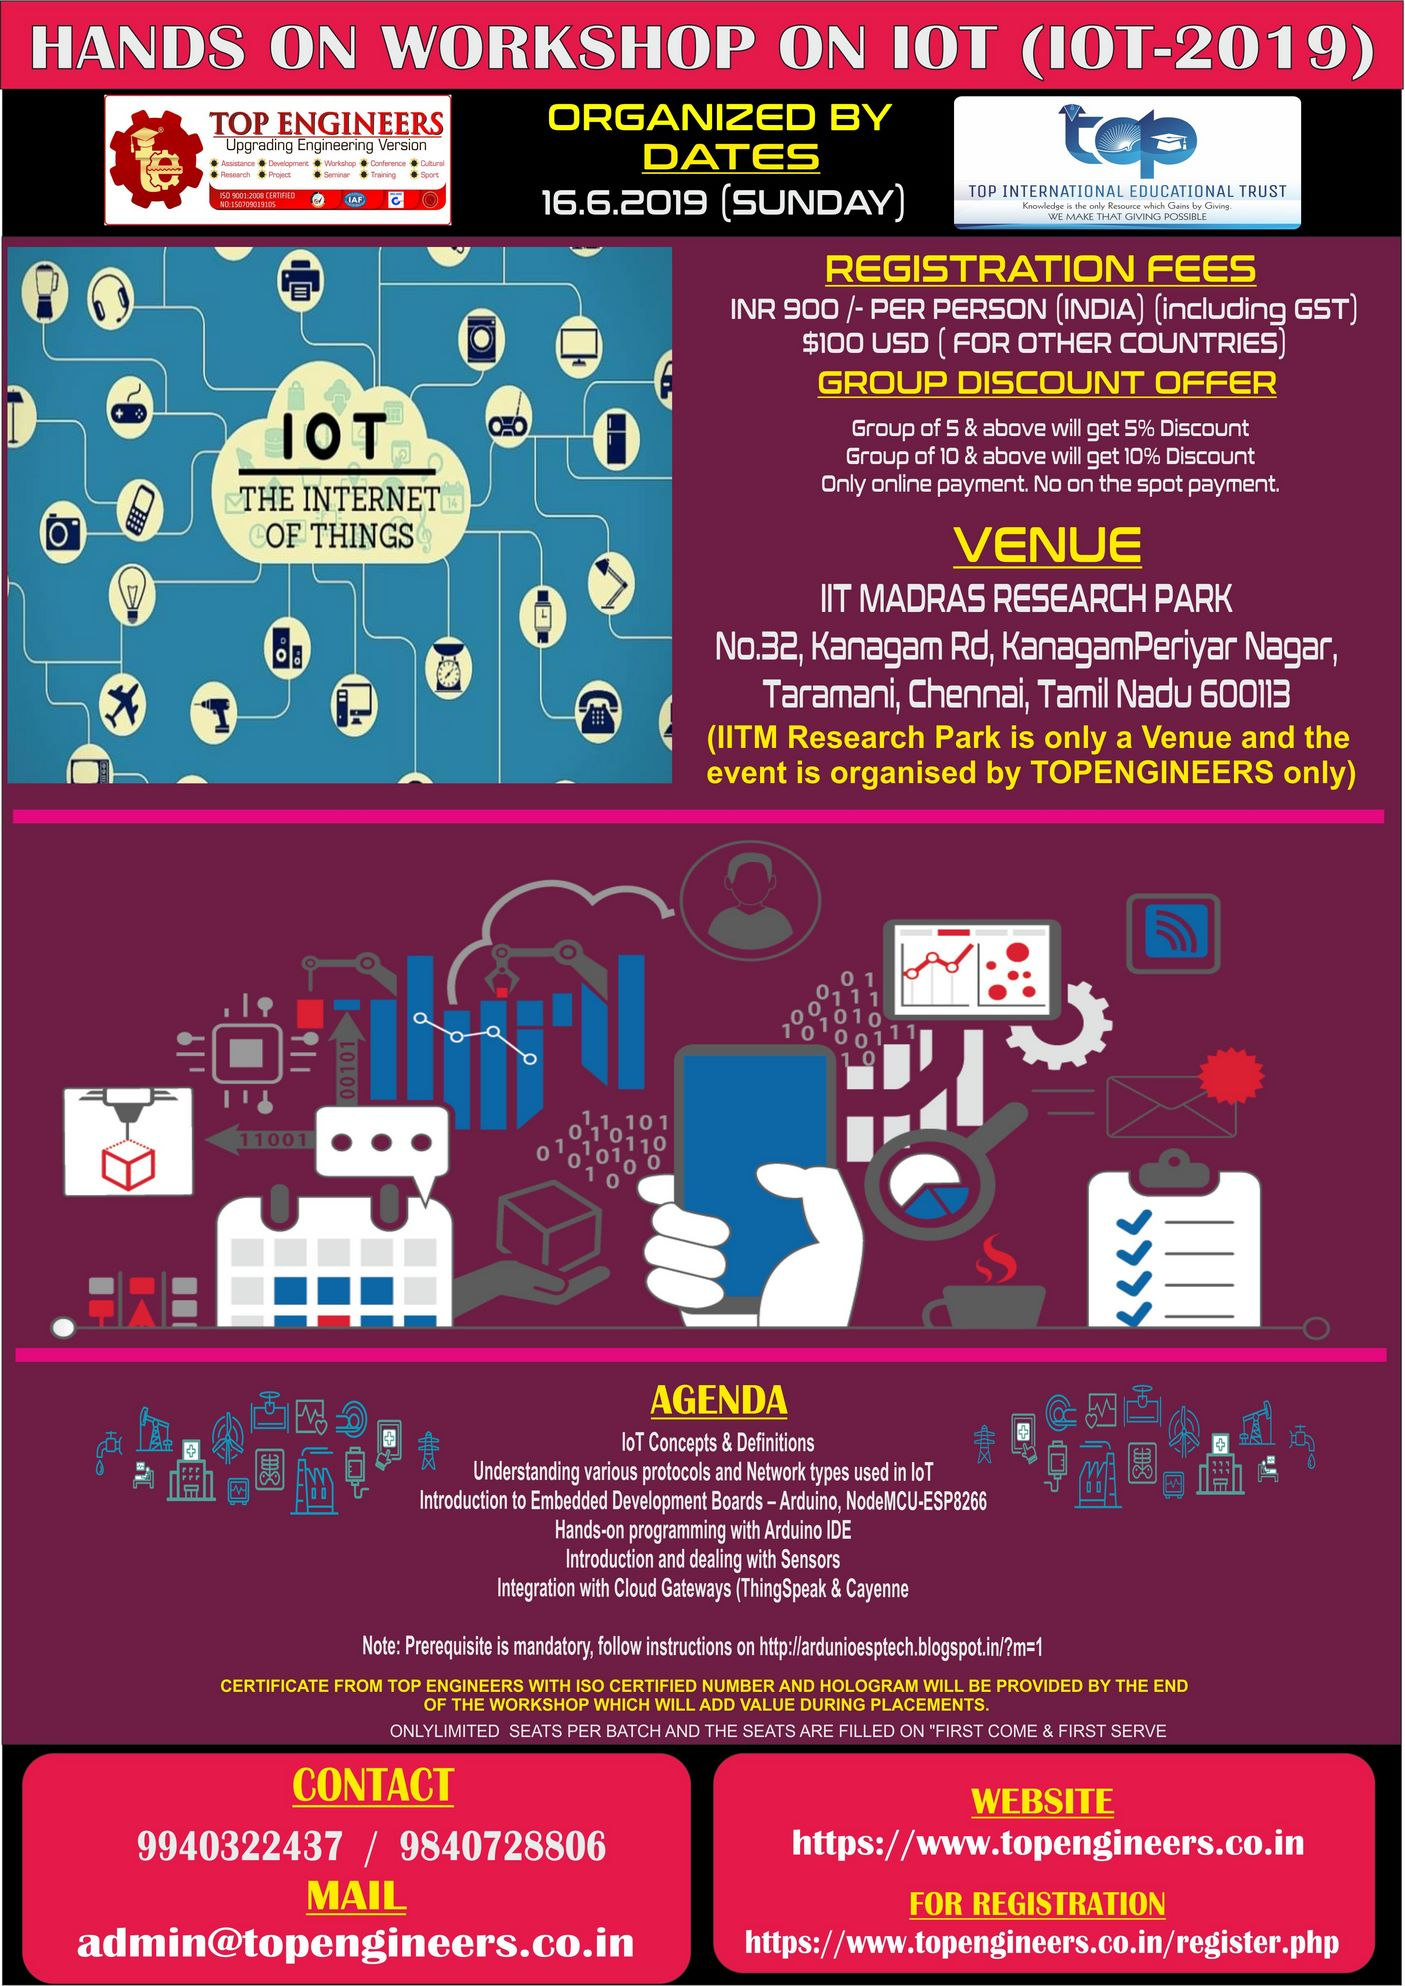 HANDS ON WORKSHOP ON IOT - 2019-Workshop-TOP ENGINEERS - Student's Desk